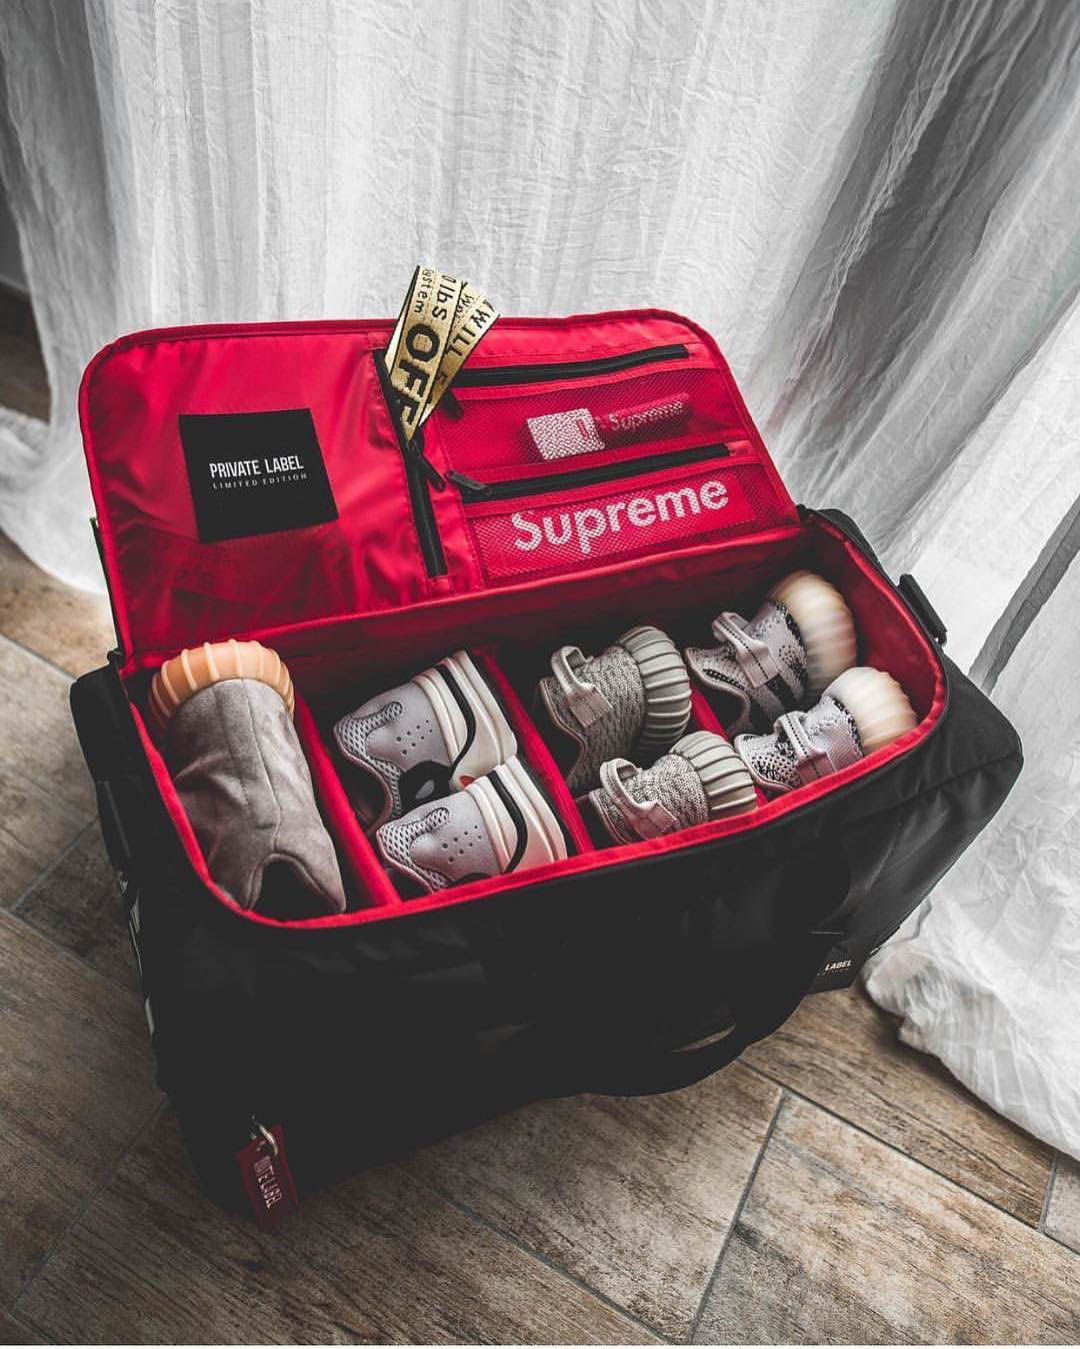 Sneaker Care When Traveling Is Essential Utilizing Sole Tree